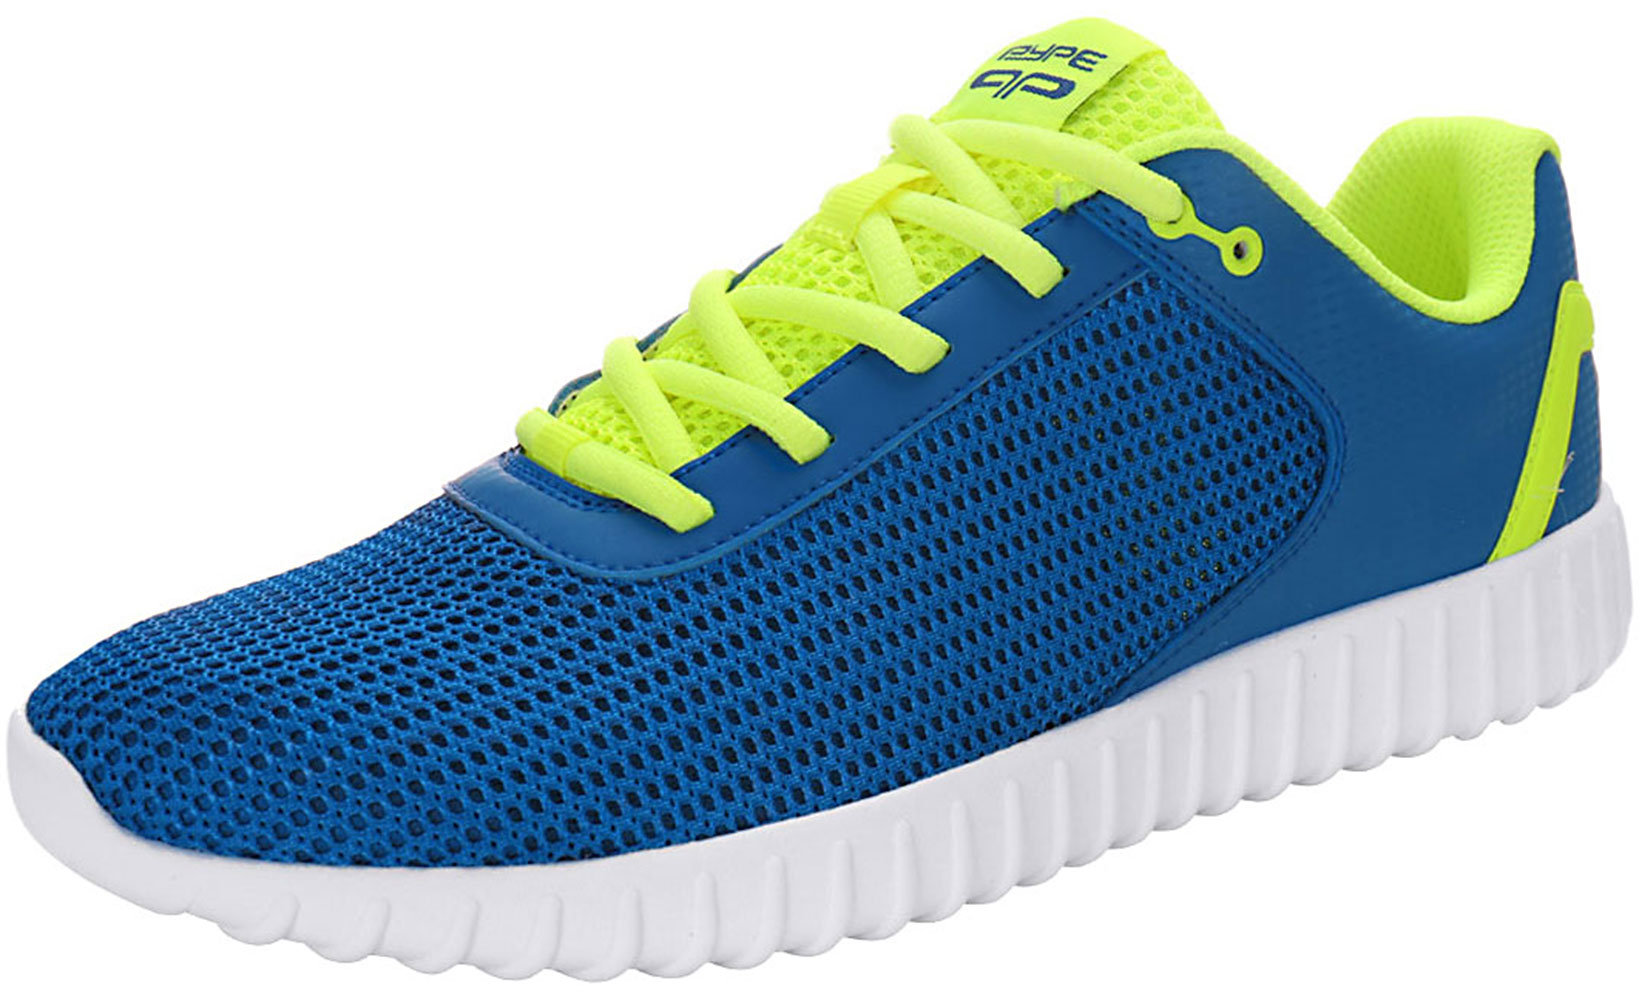 PYPE Women Contrast Color PU Panel Mesh Training Shoes Blue US 9.5